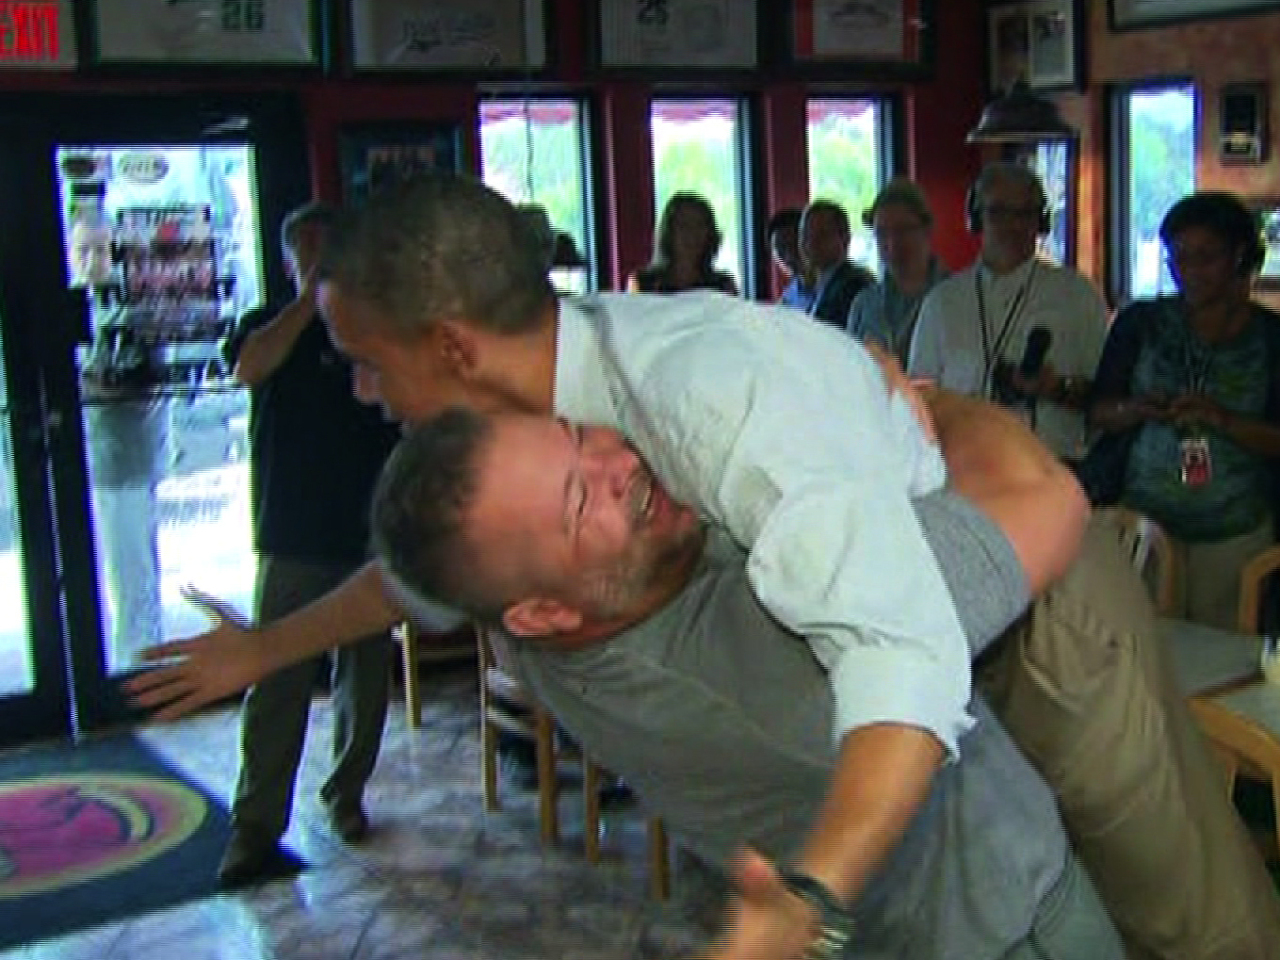 Obama Hug: Florida Pizza Shop Owner Facing Boycotts